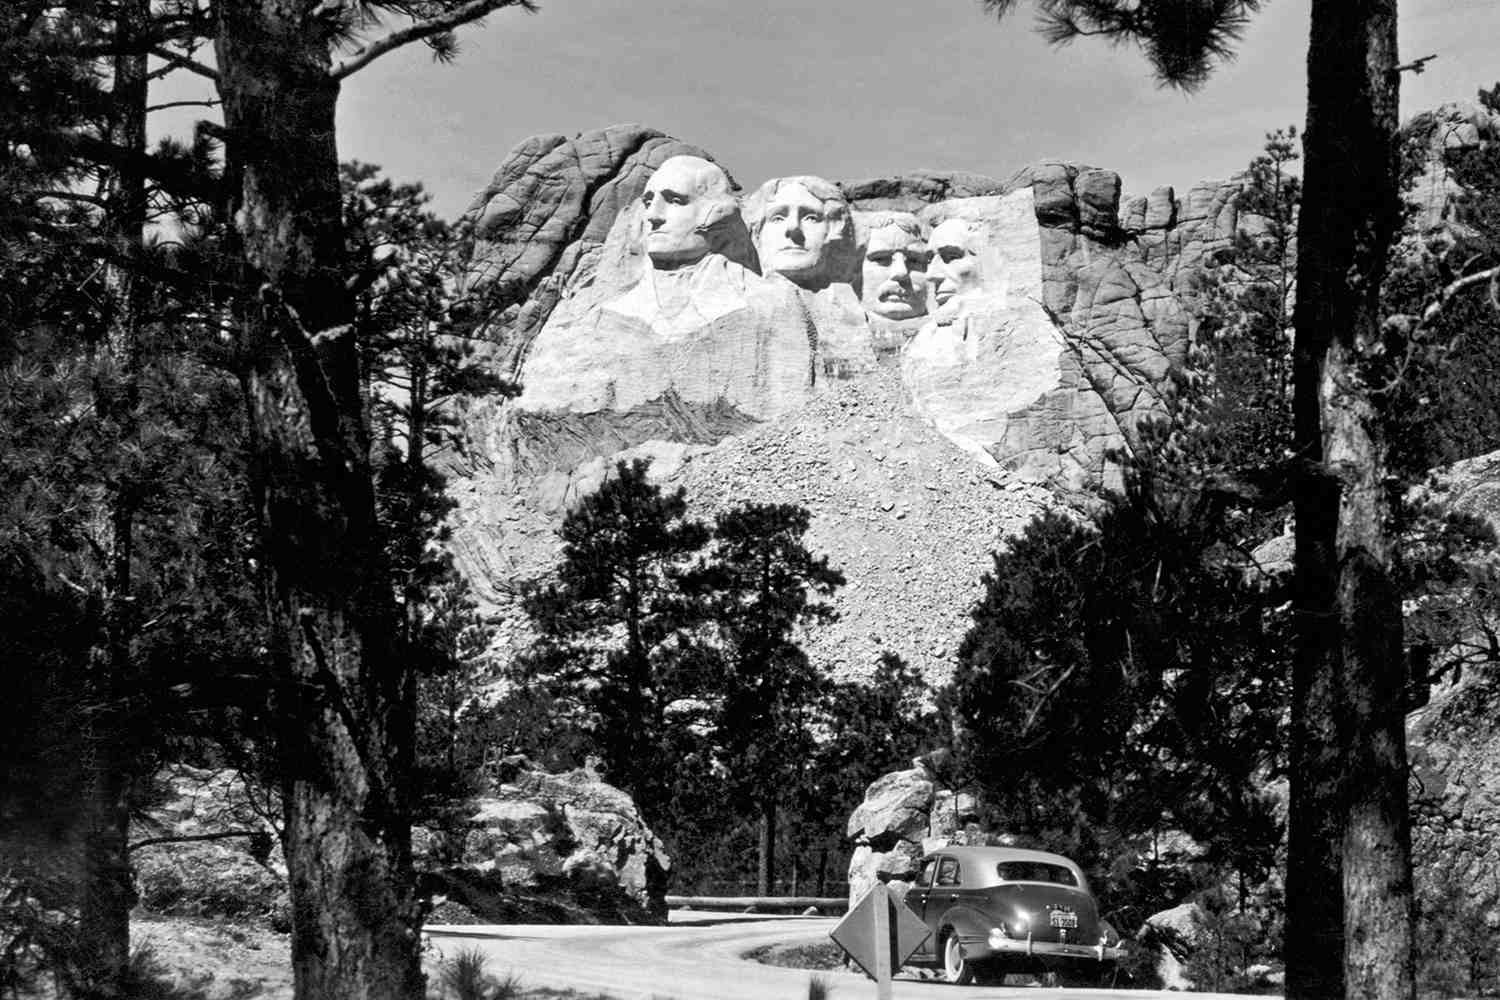 Mt. Rushmore viewed from a road